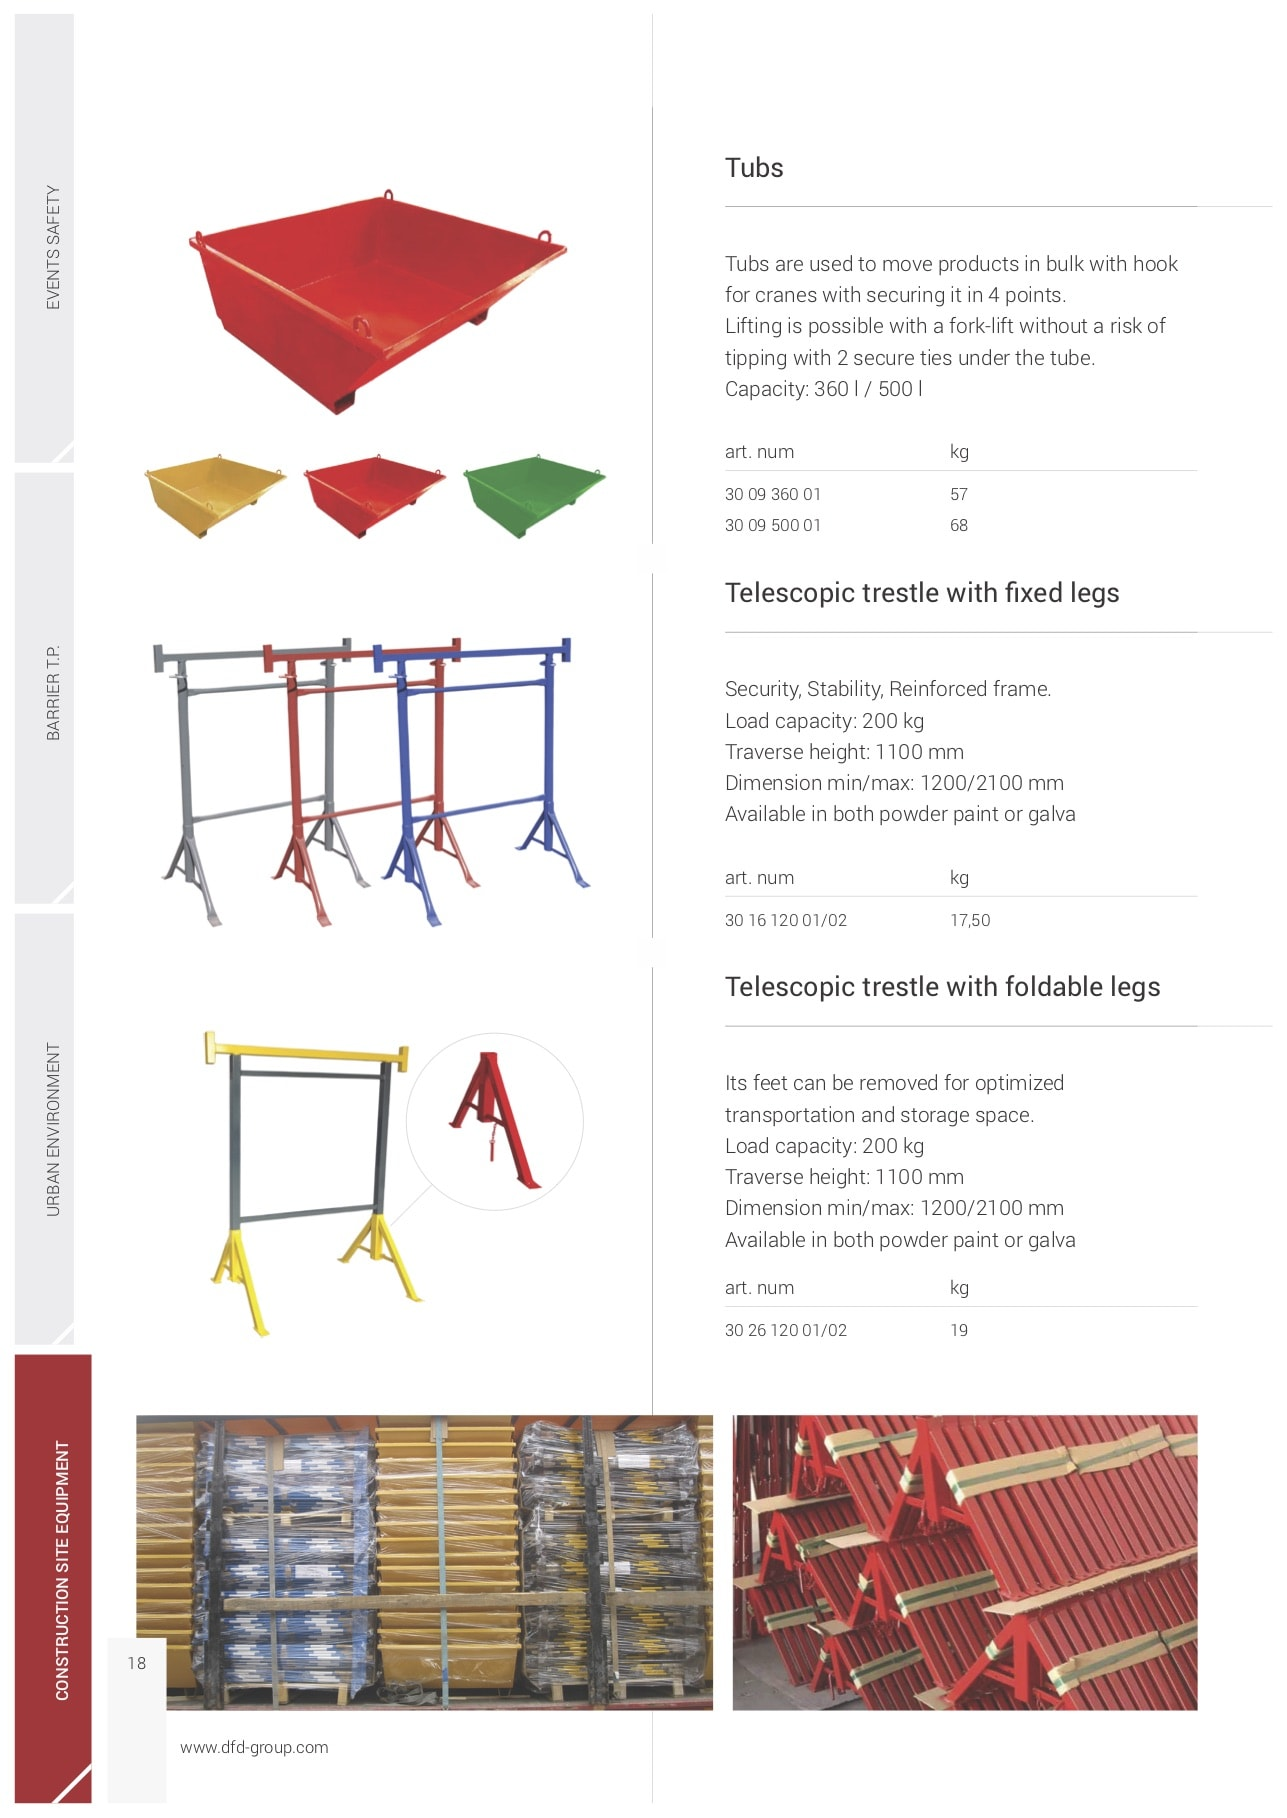 DfD_catalogue_construction_products_5